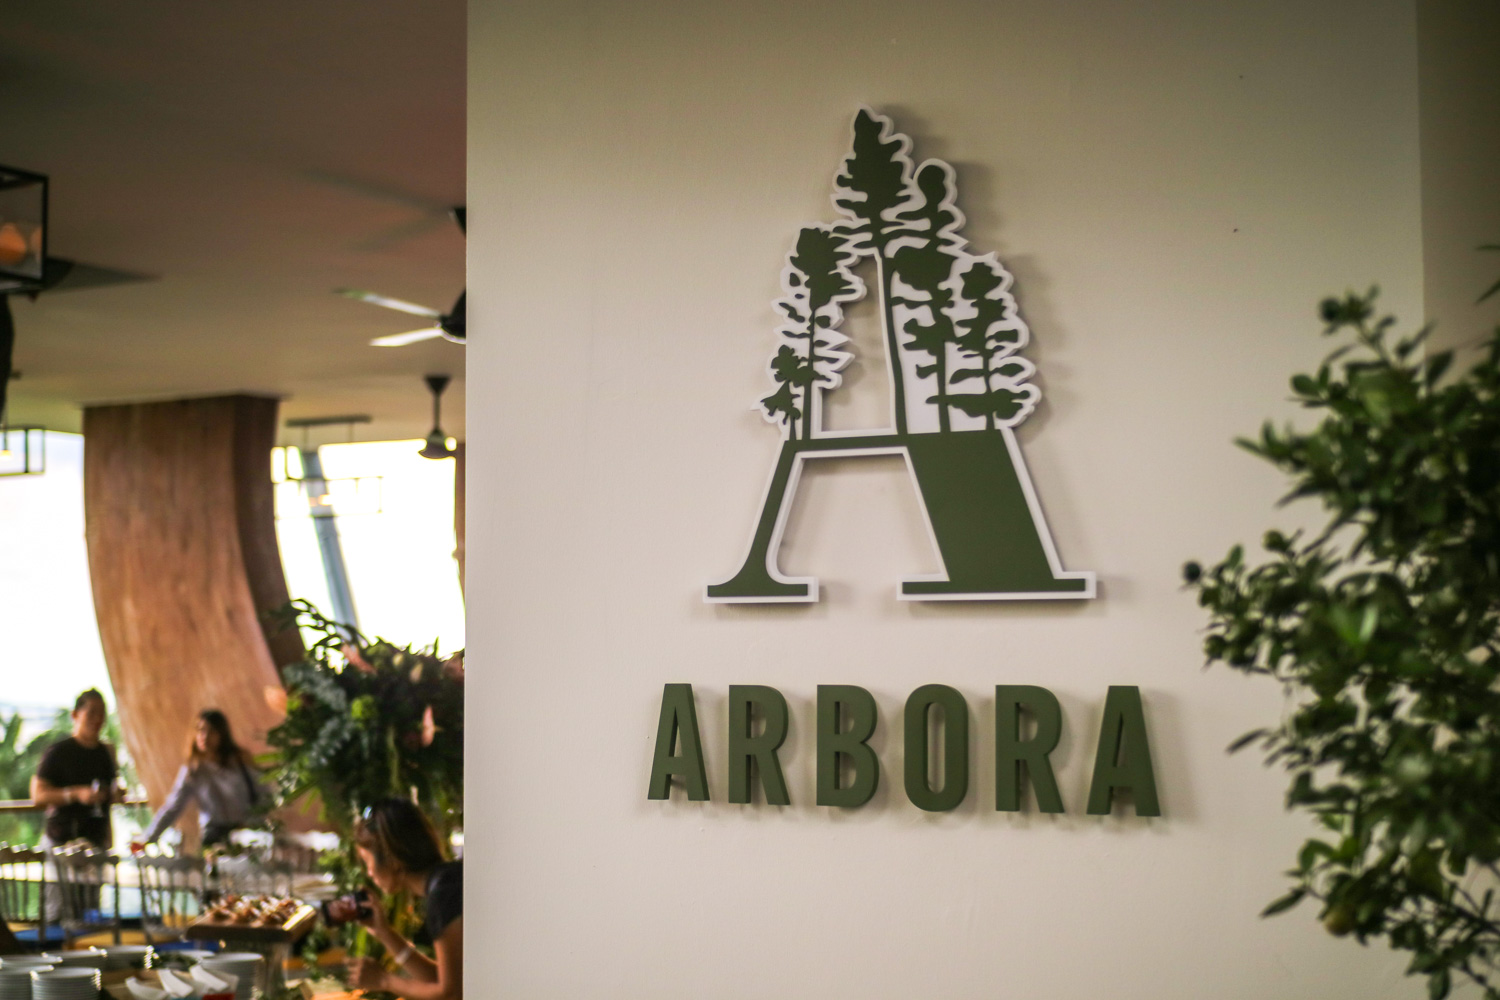 Arbora - Hilltop Restaurant at Faber Peak